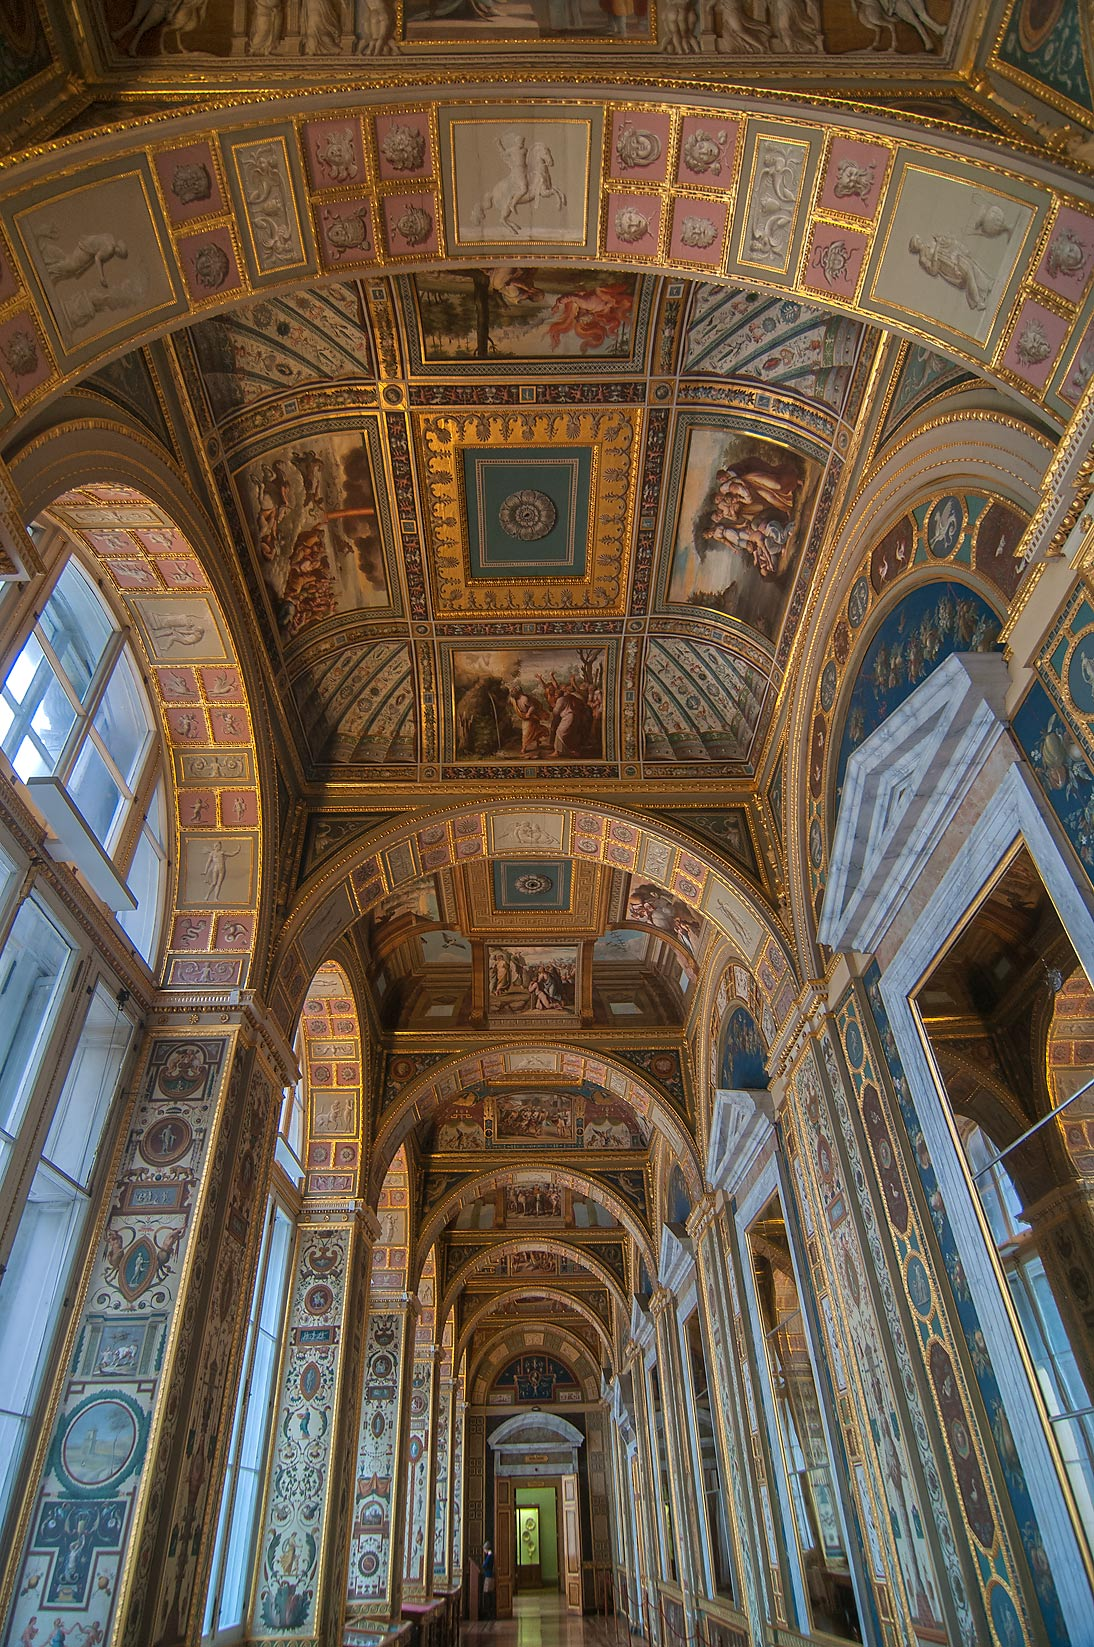 Arches of Raphael Loggias (a copy) in Hermitage Museum. St.Petersburg, Russia